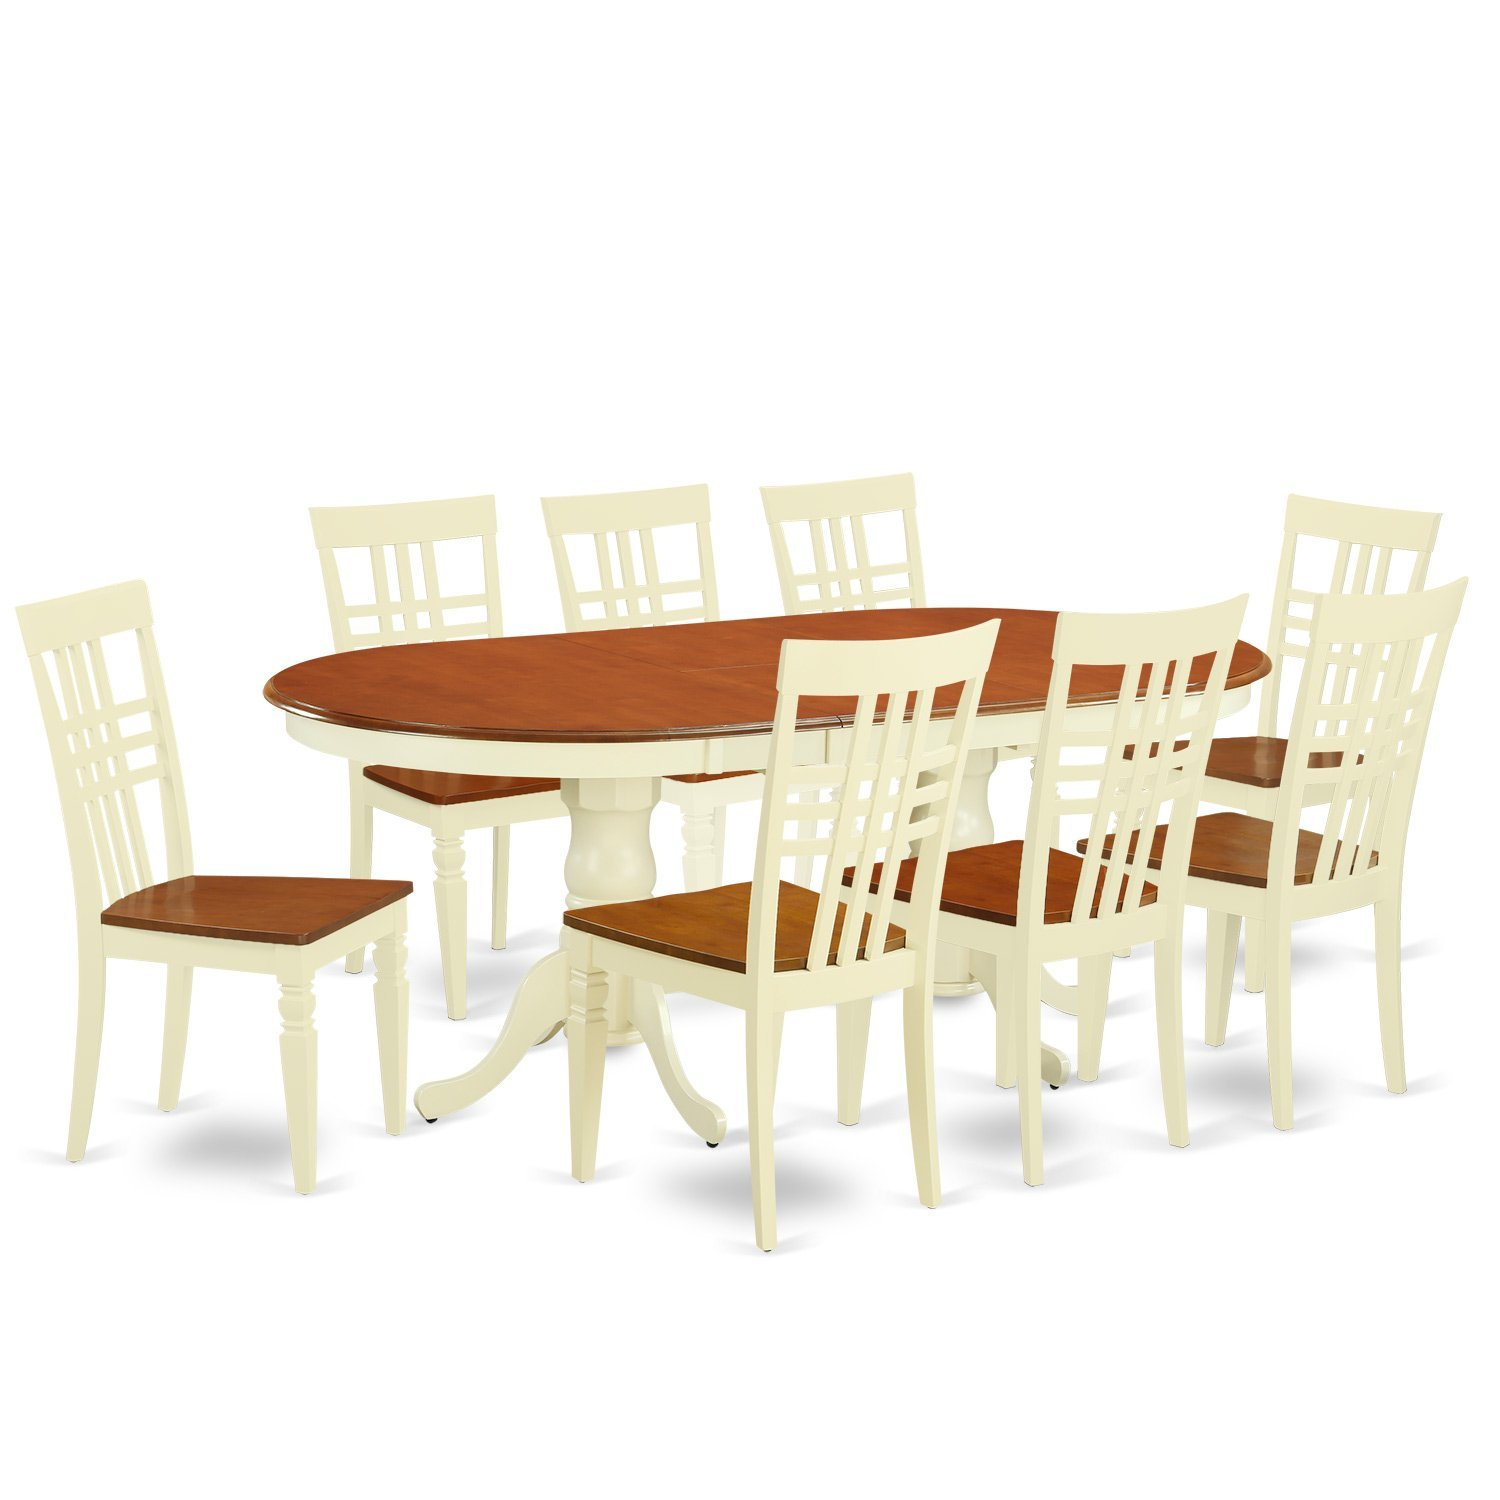 East West Furniture PVLG9-BMK-W 9 PC Table Set with One Plainville Dining Room Table & Eight Kitchen Chairs in Buttermilk & Cherry Finish